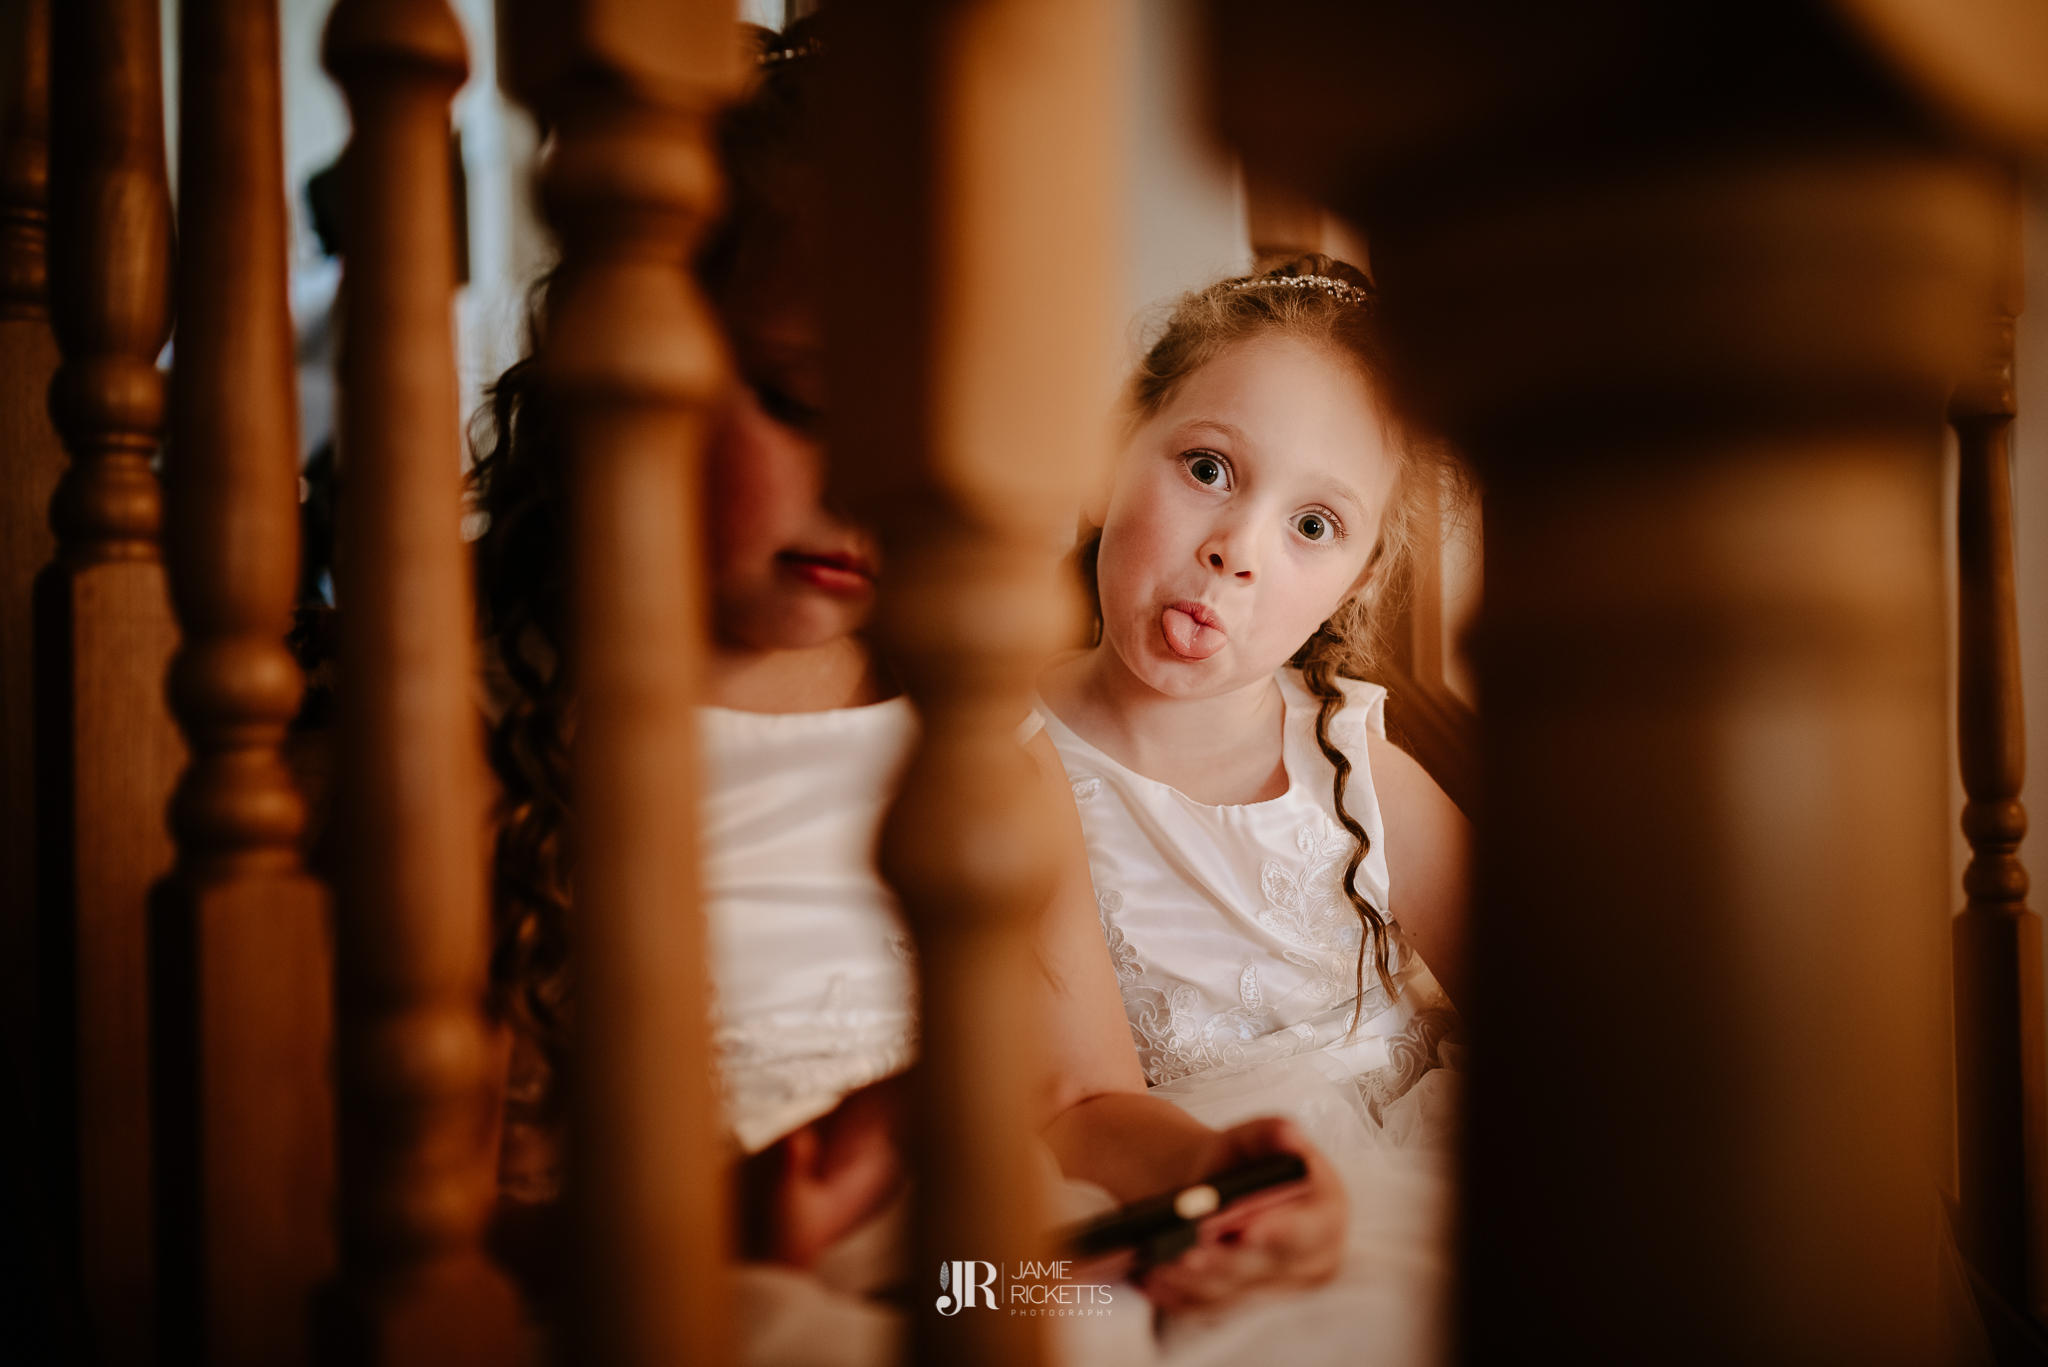 Wroxeter-Hotel-Wedding-Photography-In-Shropshire-By-Shropshire-Wedding-Photographer-Jamie-Ricketts-019.JPG